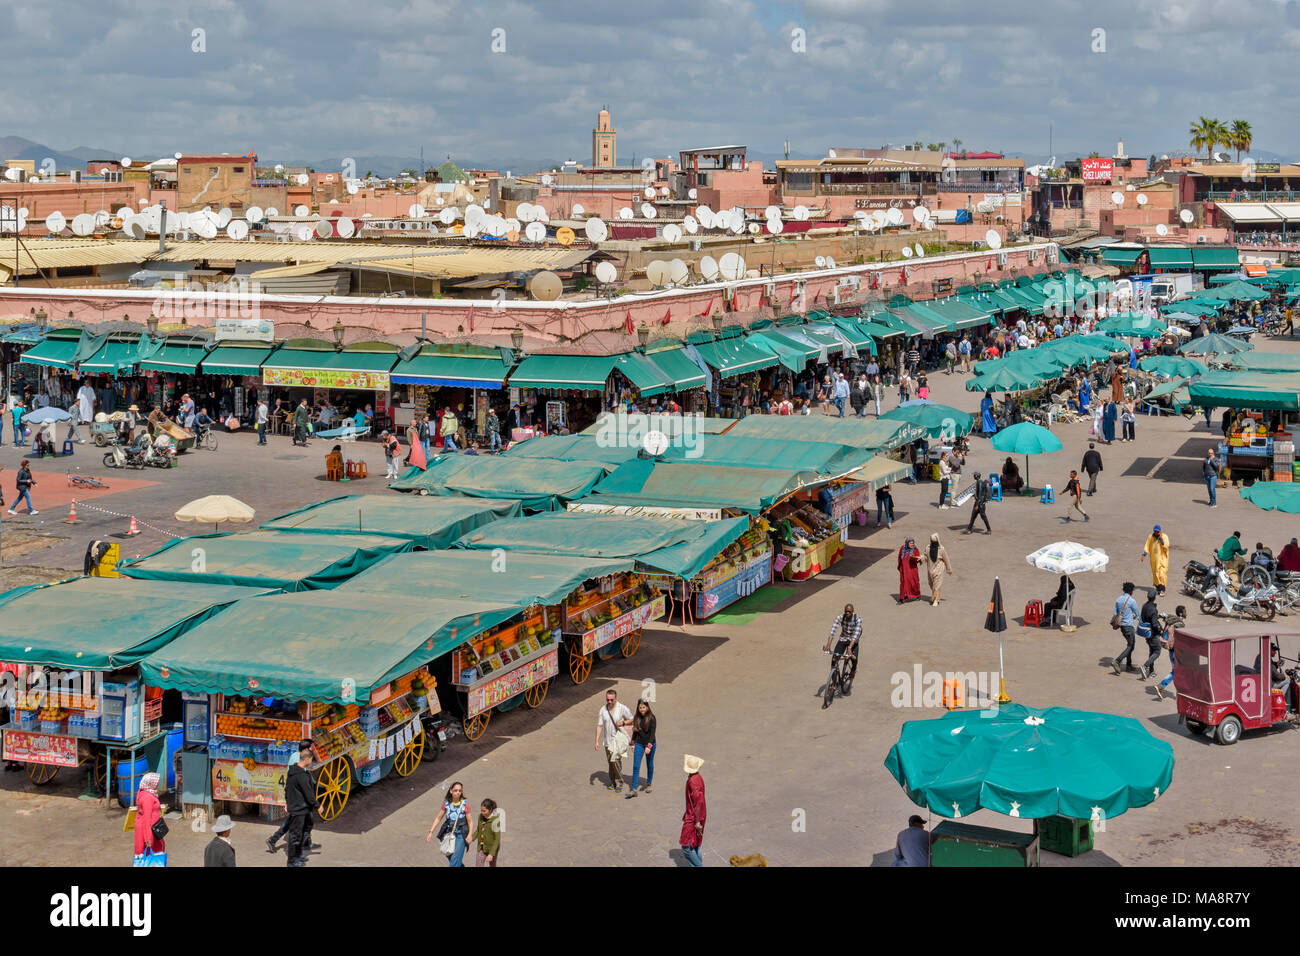 MOROCCO MARRAKECH PLACE JEMAA EL FNA STALLS SHOPS ENTERTAINERS CROWDS PART TWO - Stock Image